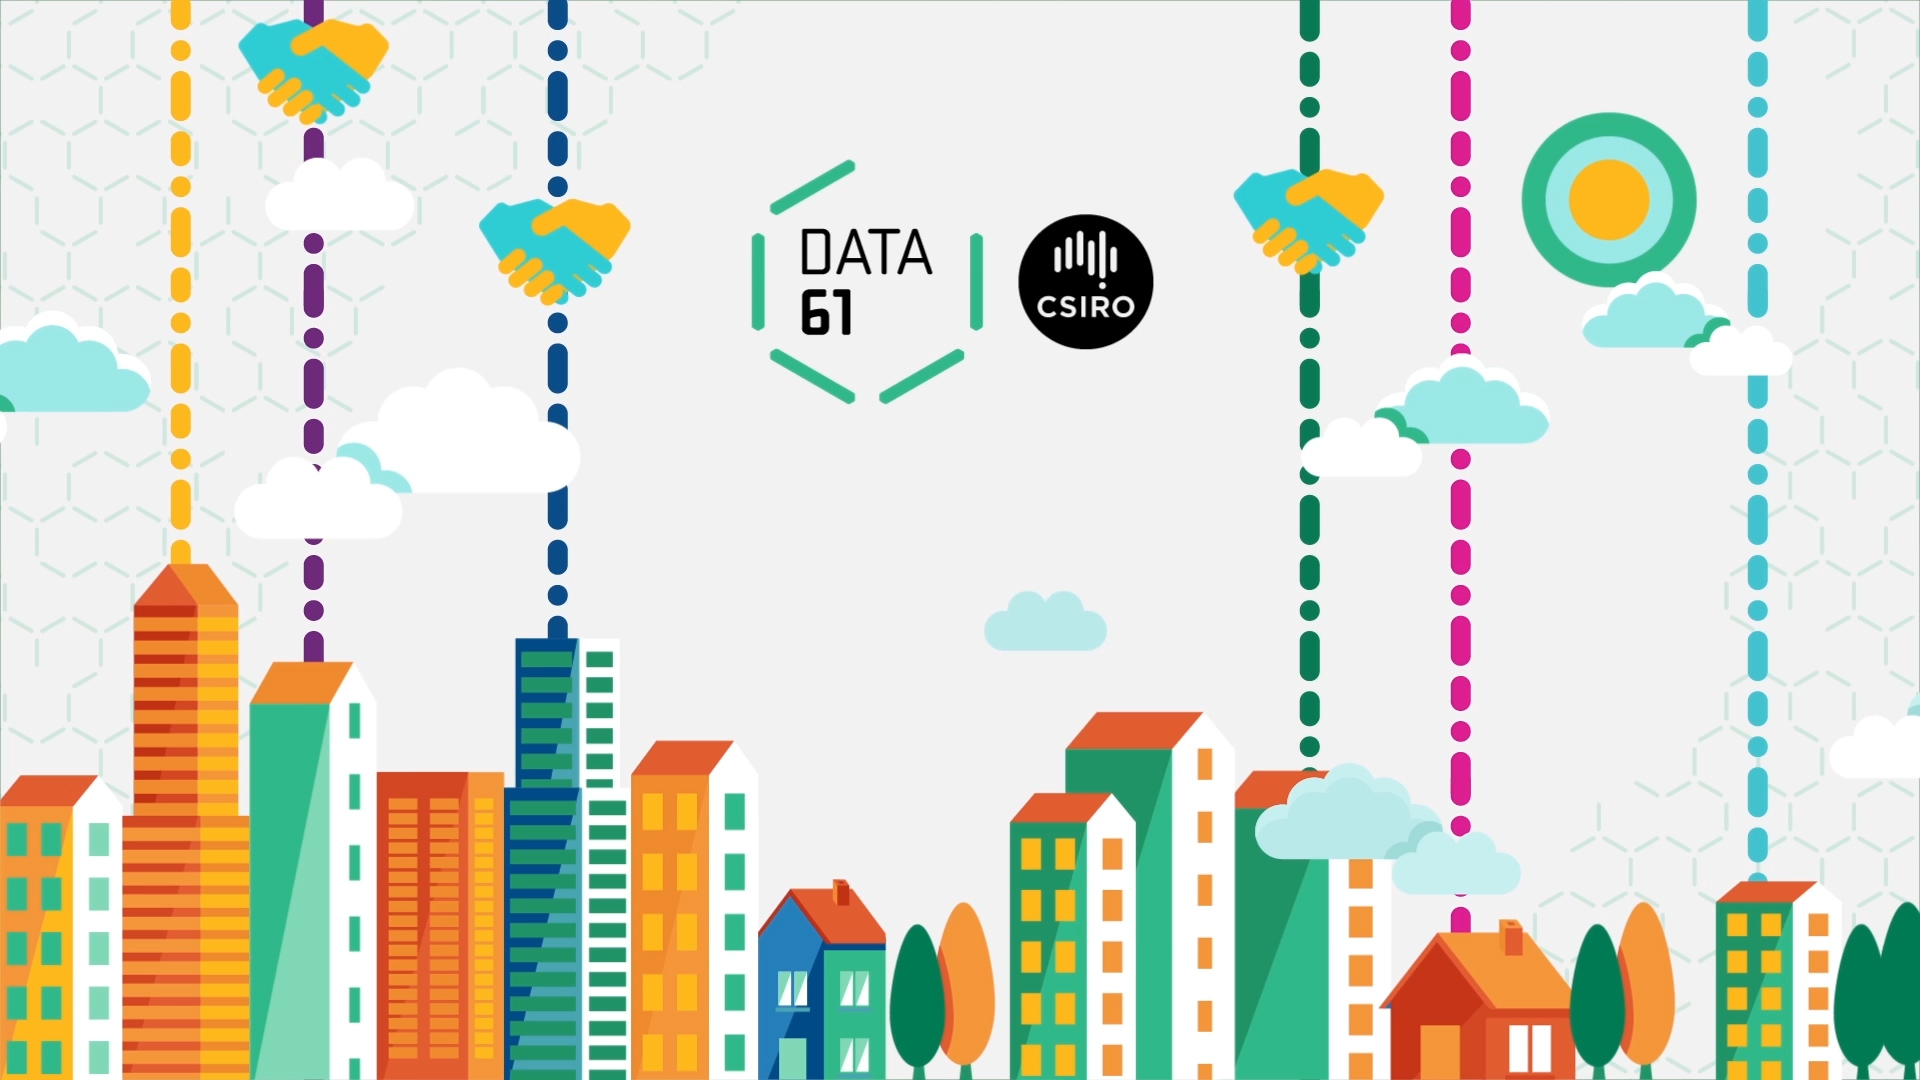 A skyline with the Data61 logo and visualisation of the blockchain process